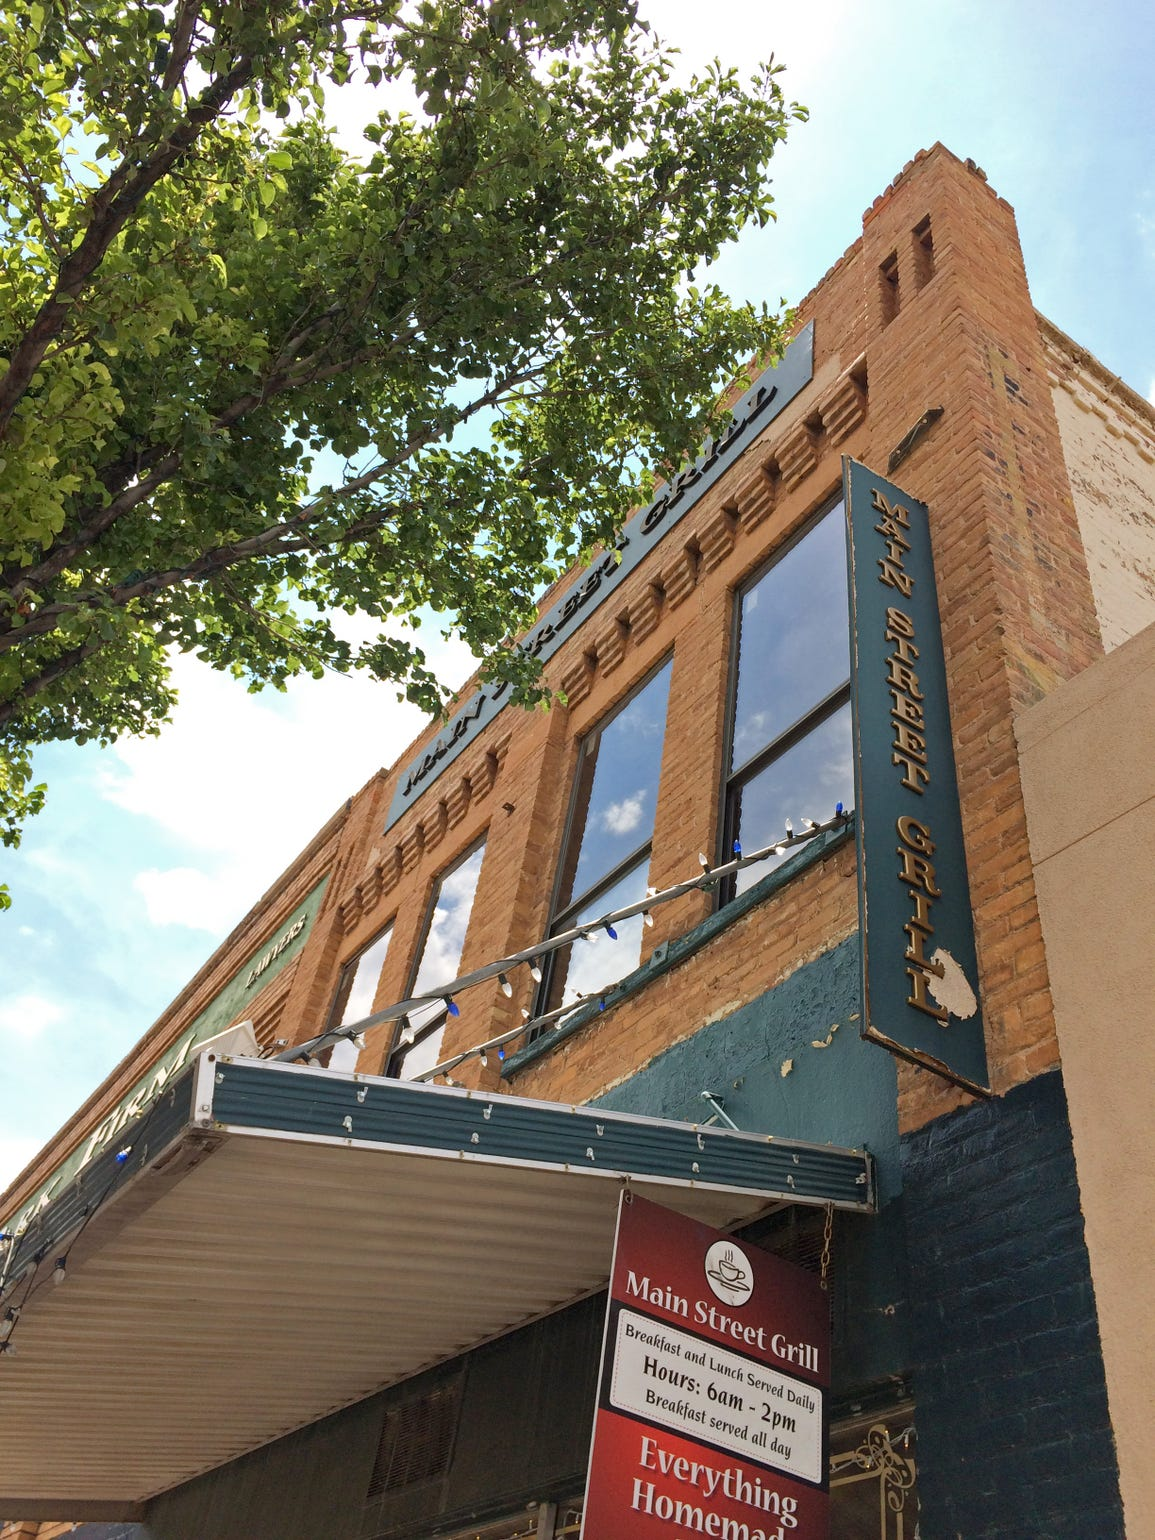 Main Street Grill has been a fixture of downtown Cedar